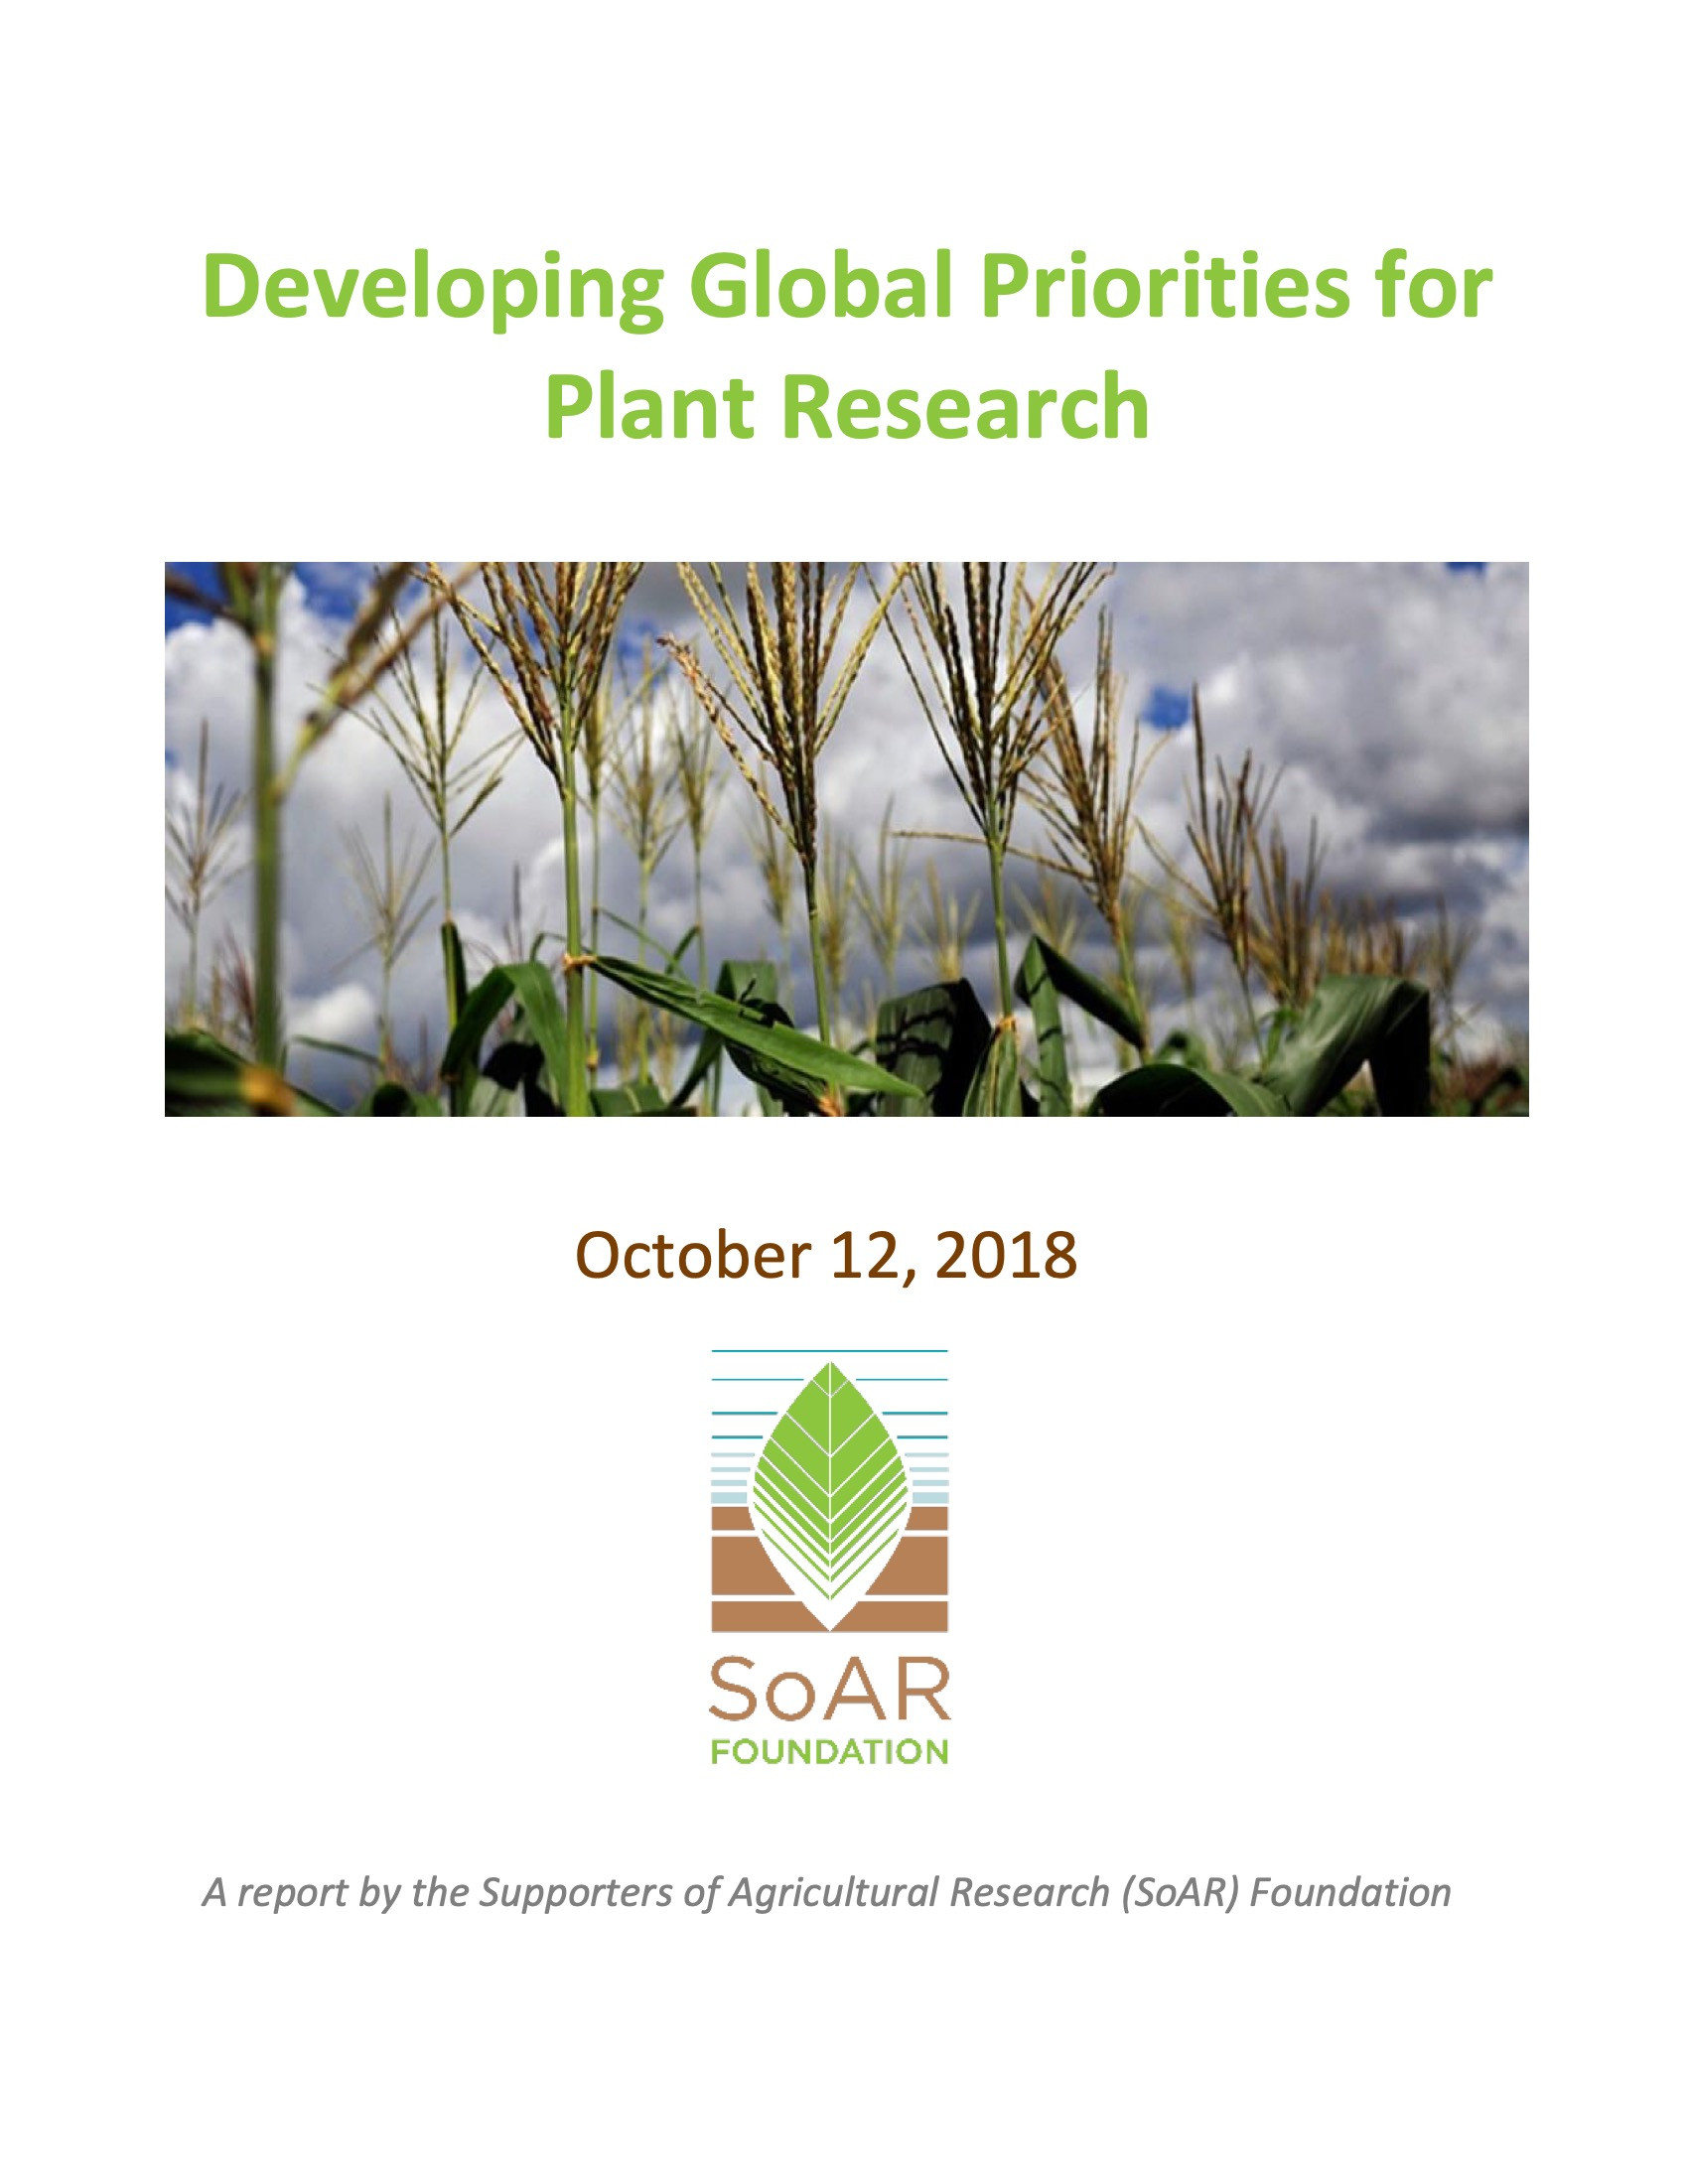 Report: Developing Global Priorities for Plant Research